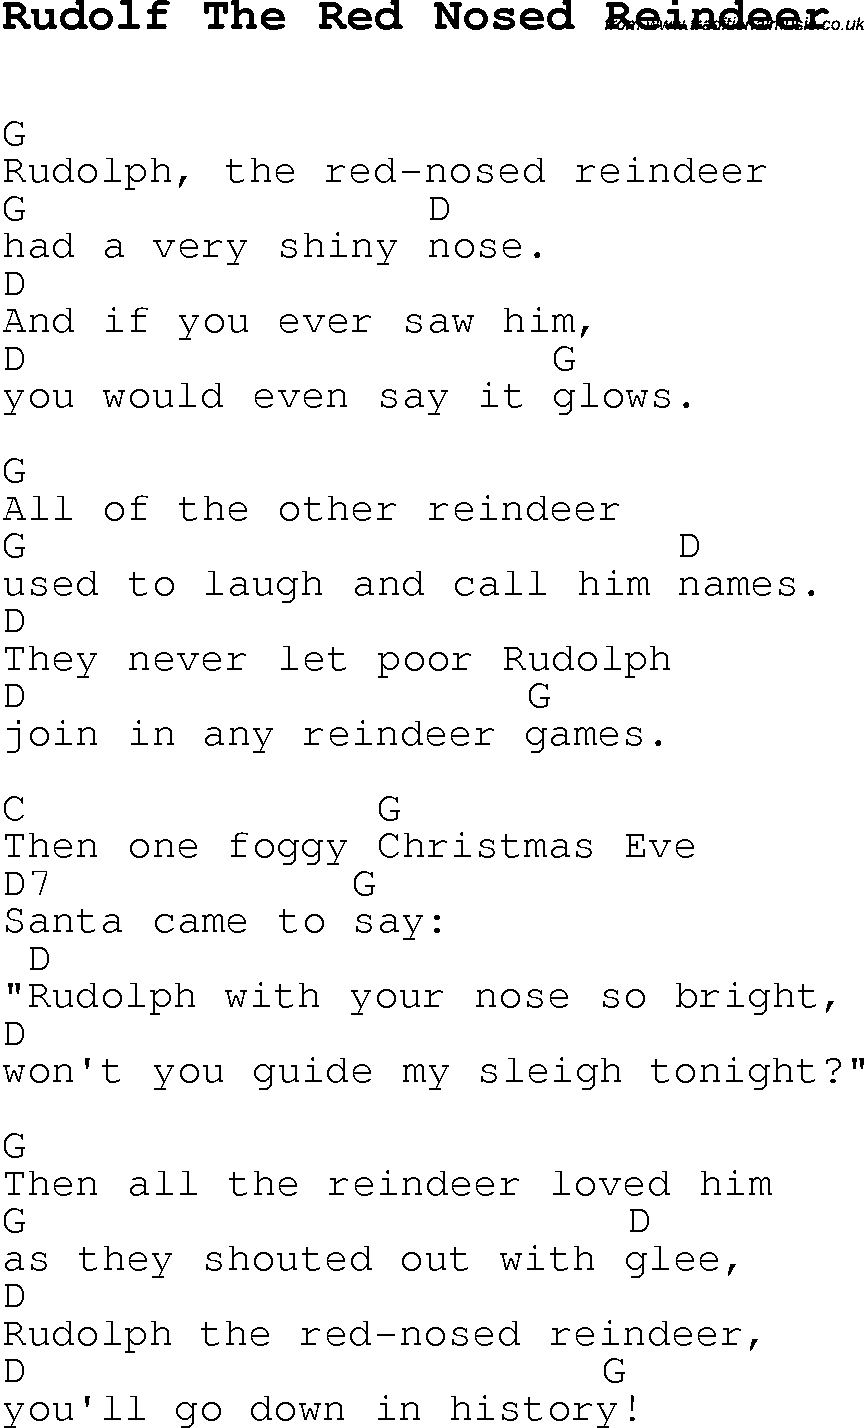 12+ Rudolph The Red Nosed Reindeer Lyrics